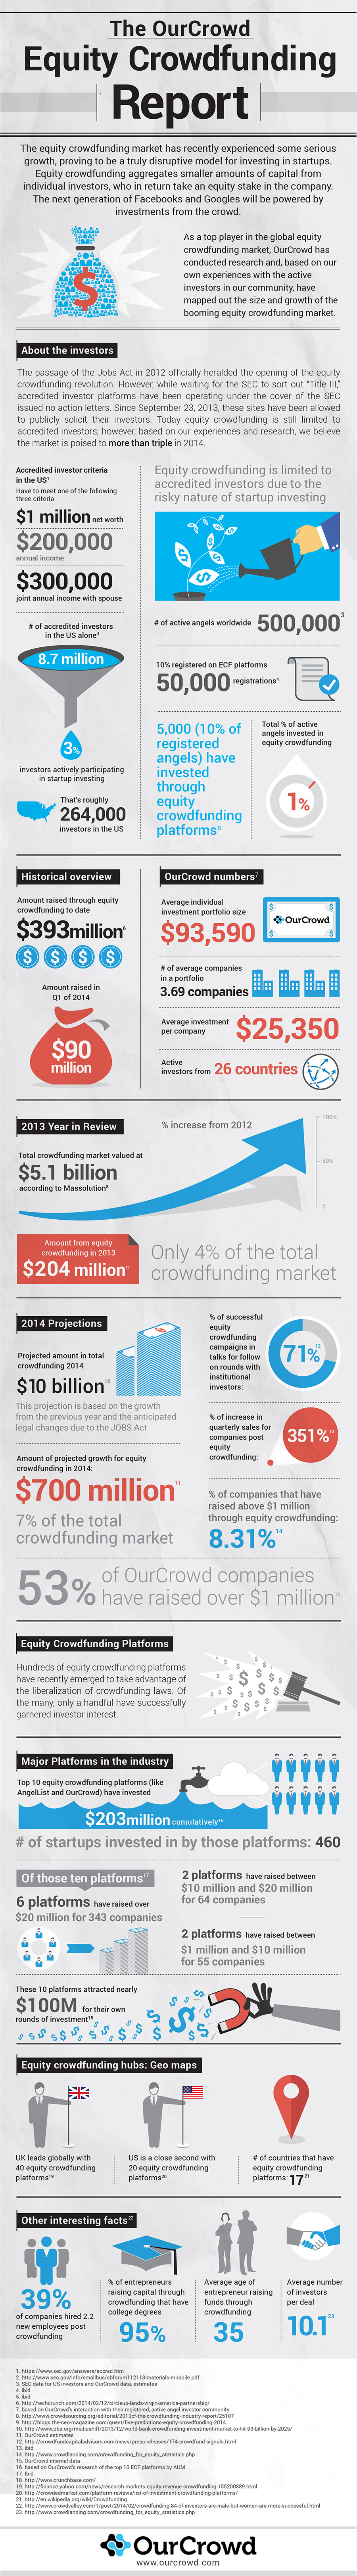 OurCloud infographic